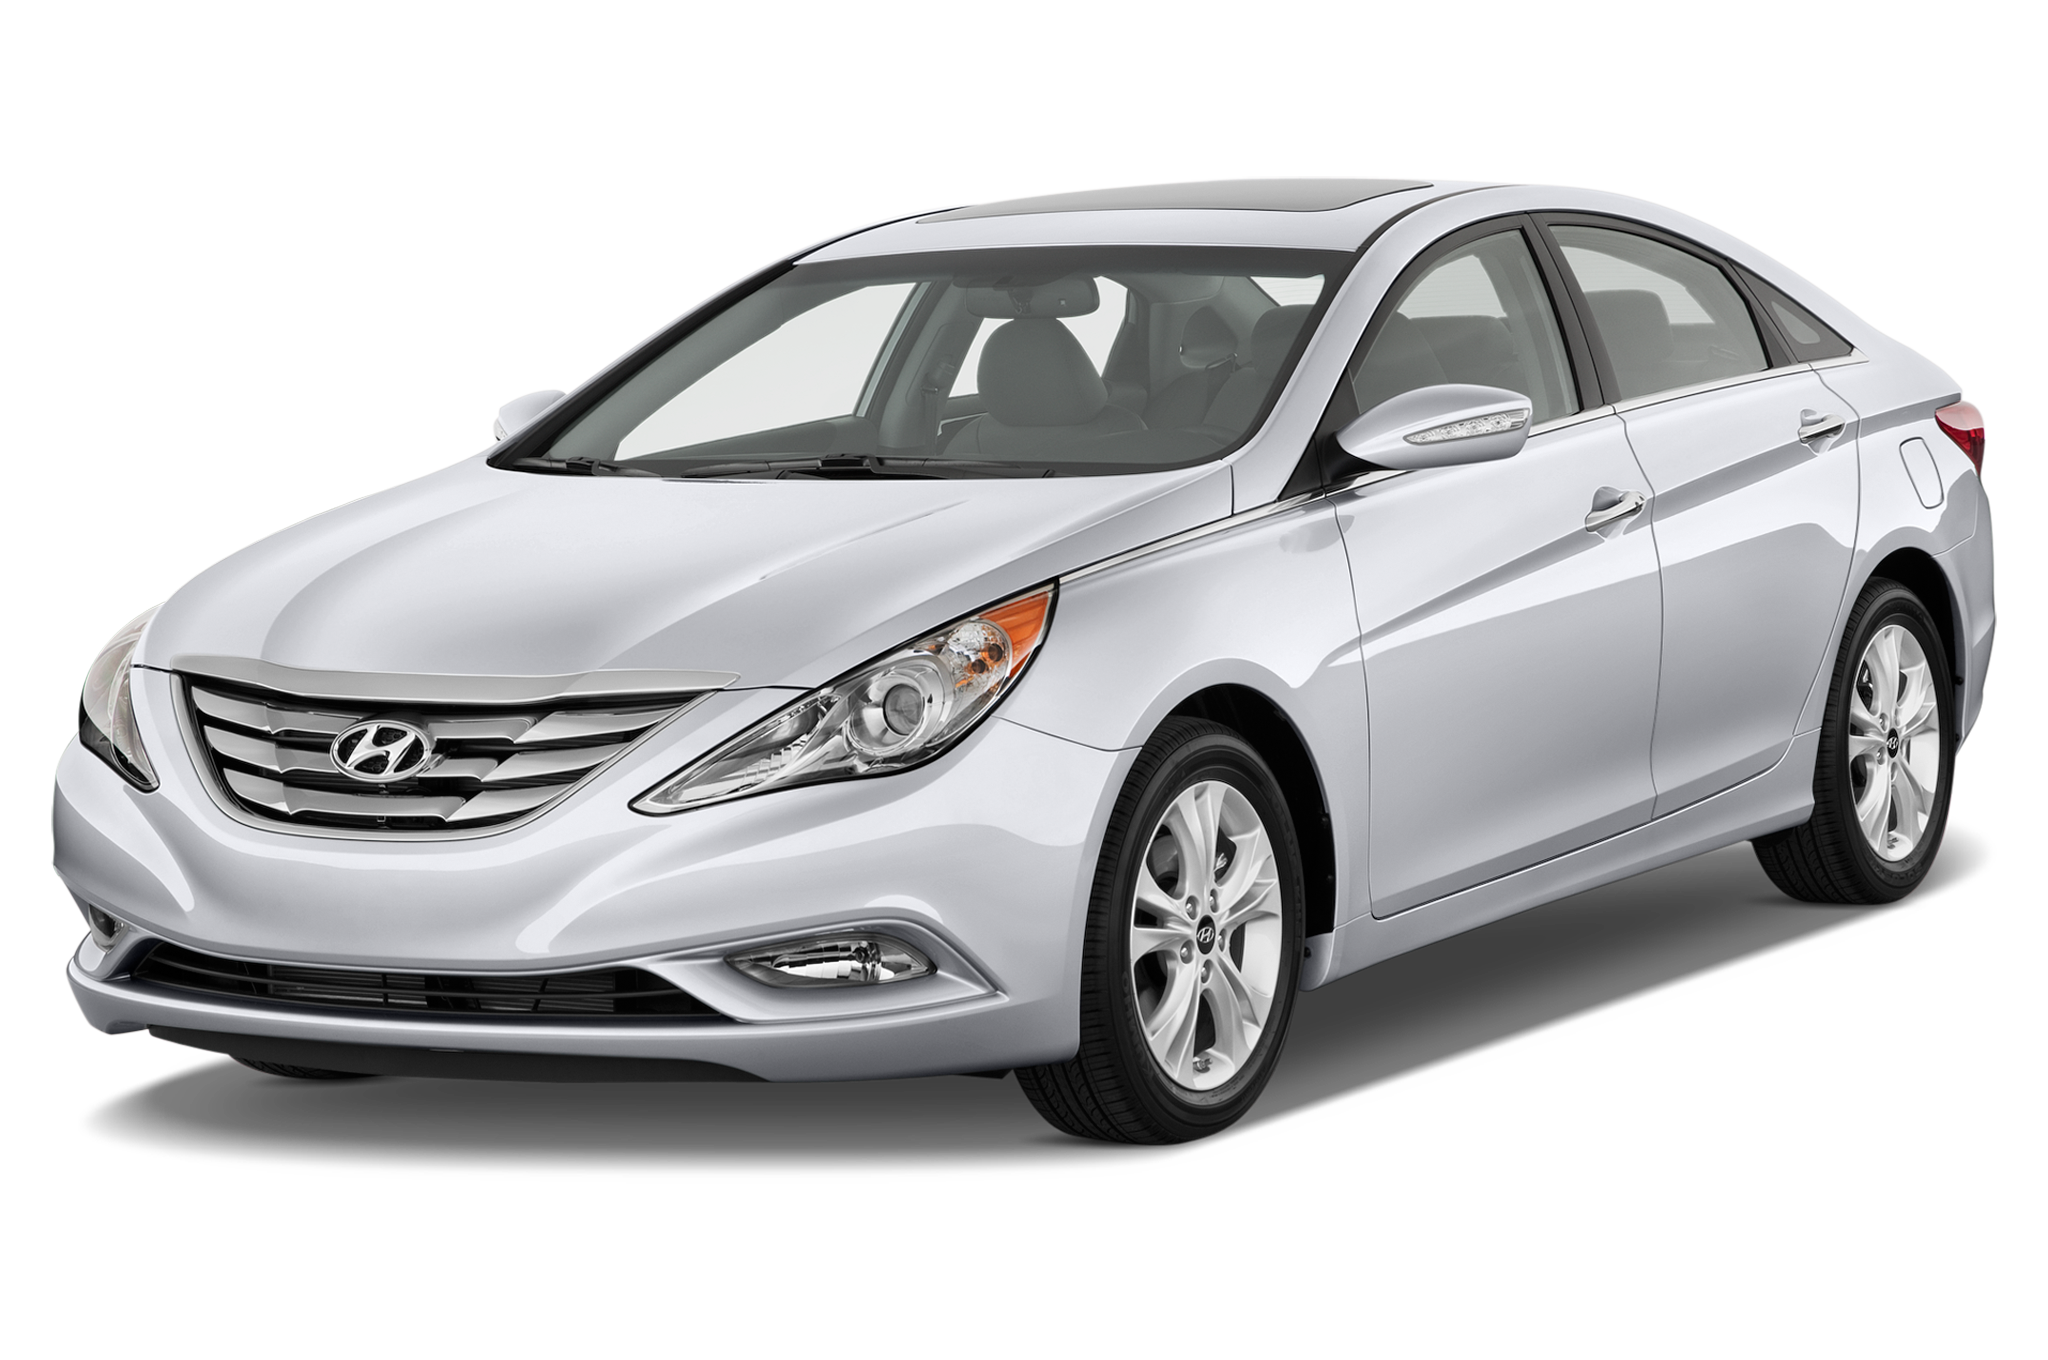 2013 Hyundai Sonata Reviews and Rating